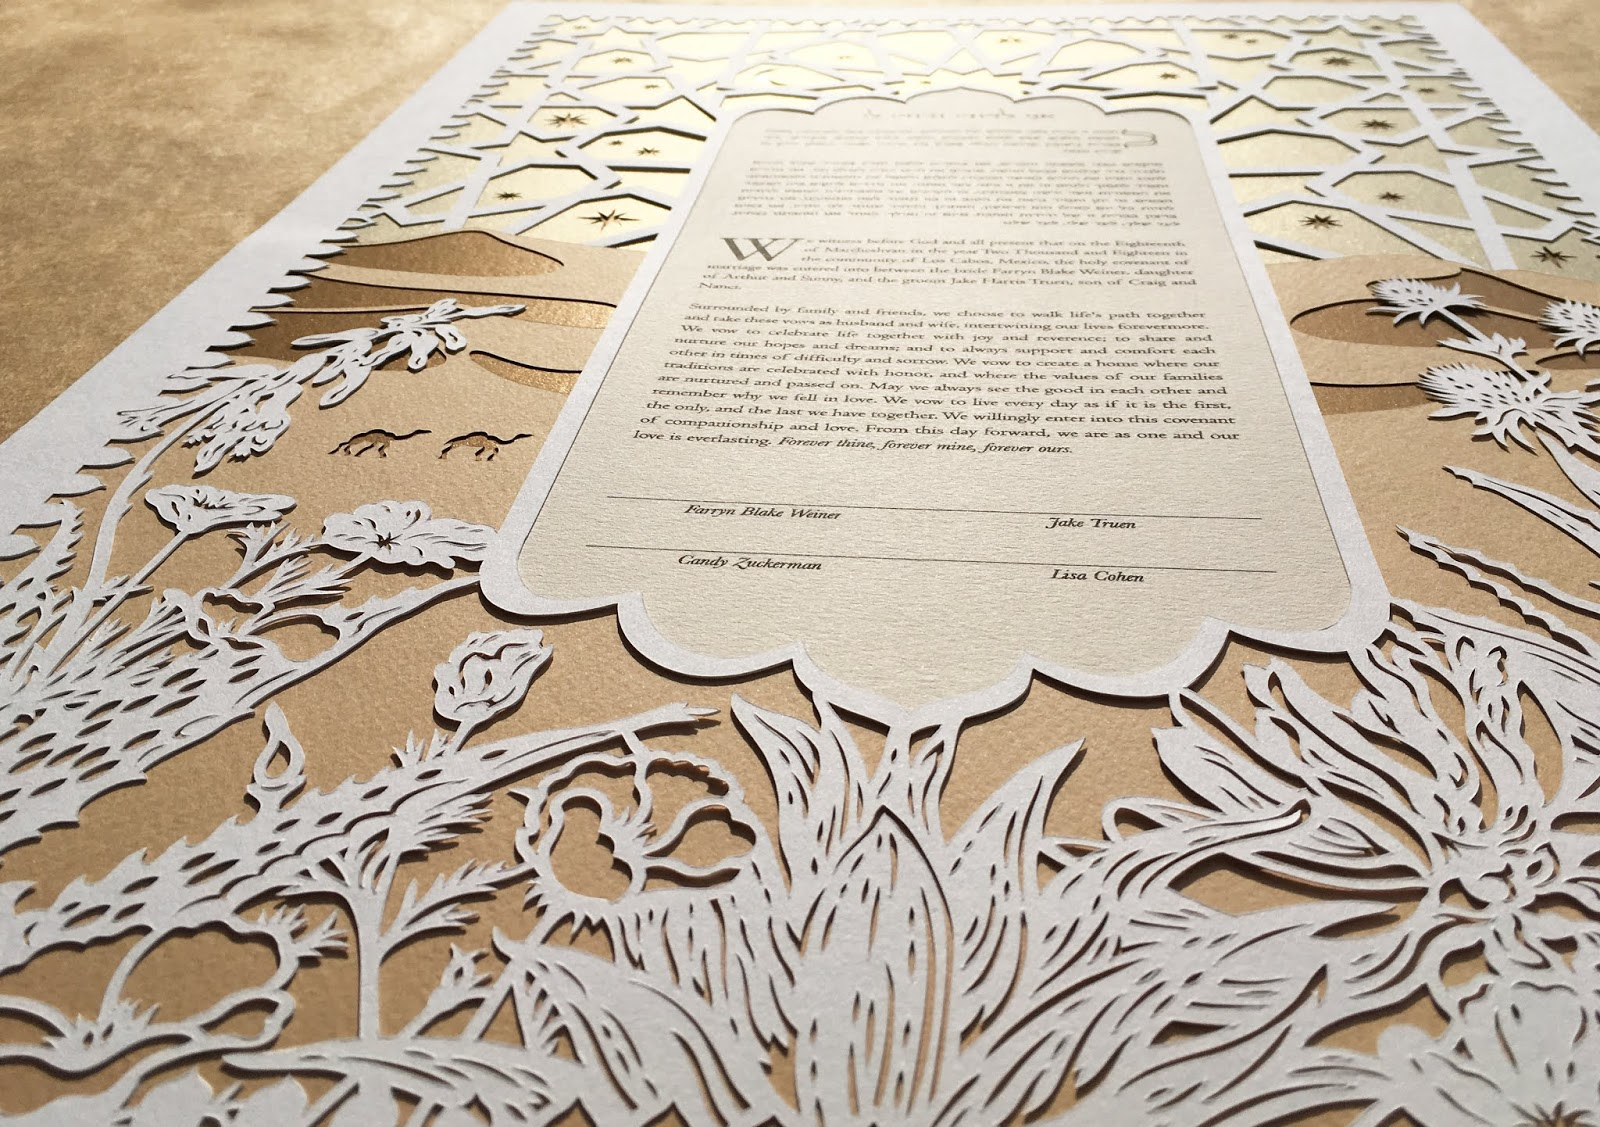 Handmade modern papercut ketubah designed & cut by Woodland Papercuts for a Jewish wedding celebration in the theme of Arabian Nights - Golds, Sand Dunes, Camels and Cacti.